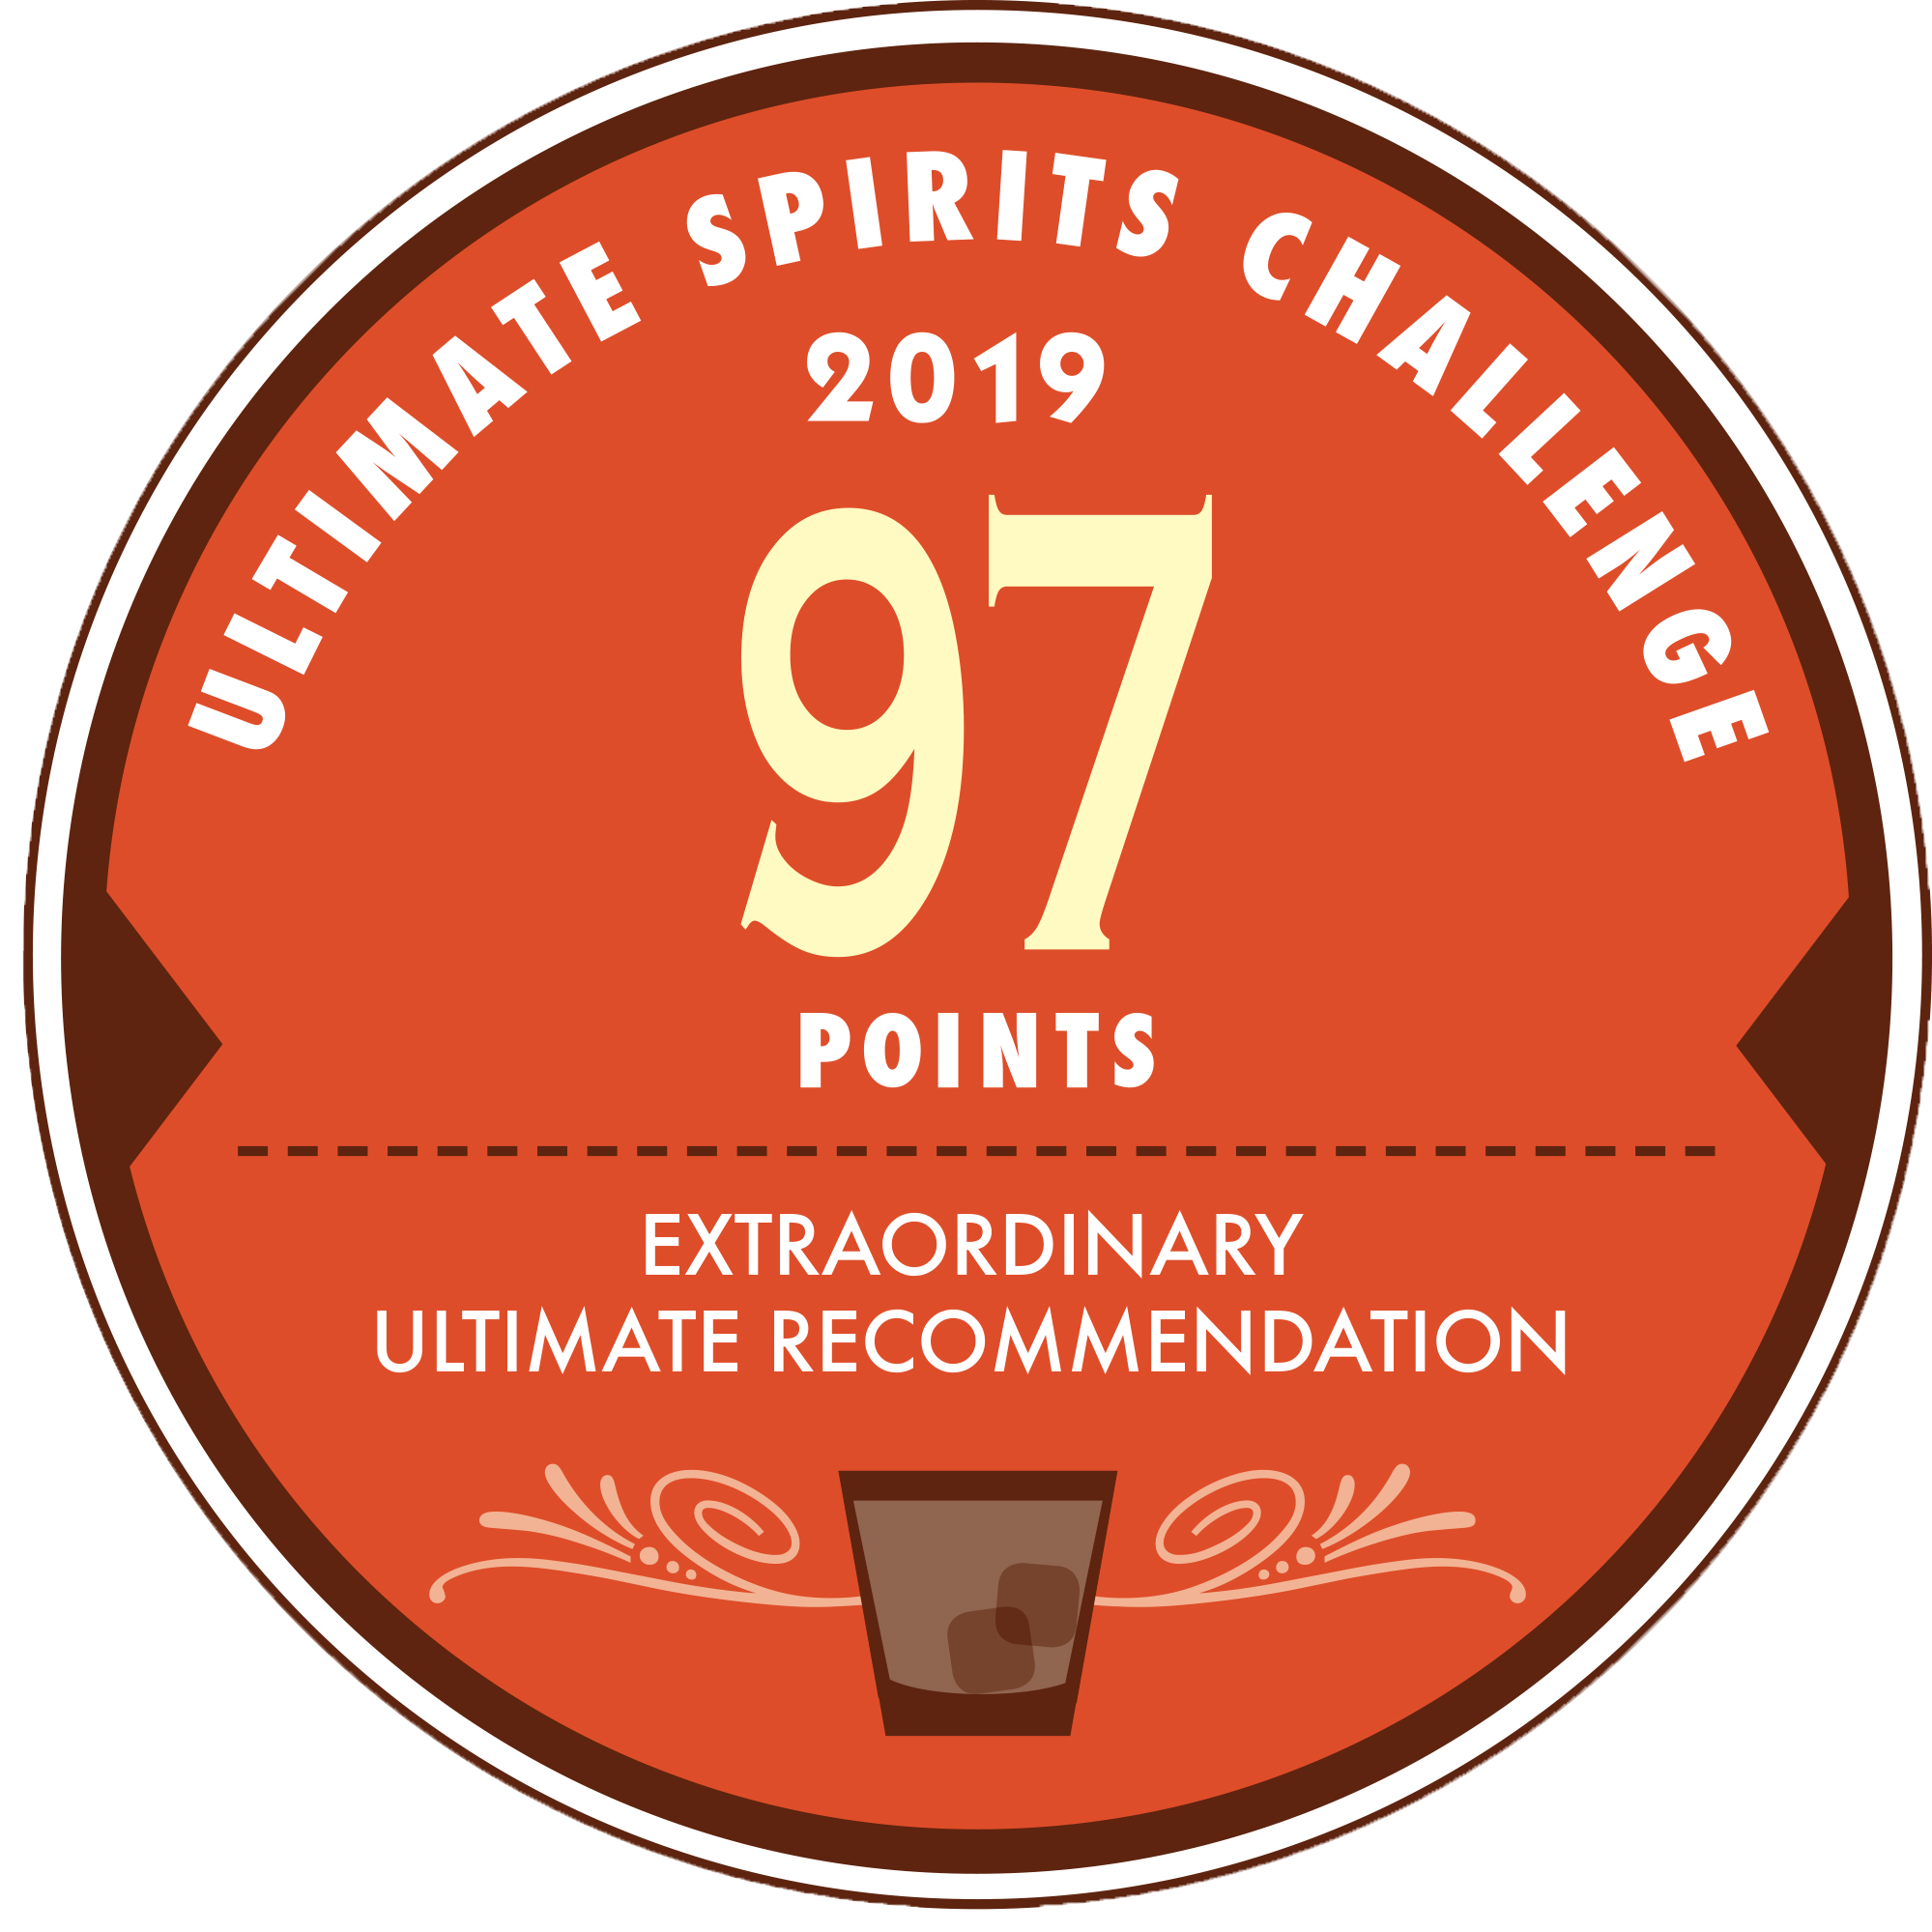 Xaymaca : Ultimate Spirits Challenge 2019, 97 Points Extraordinary Ultimate Recommendation, US